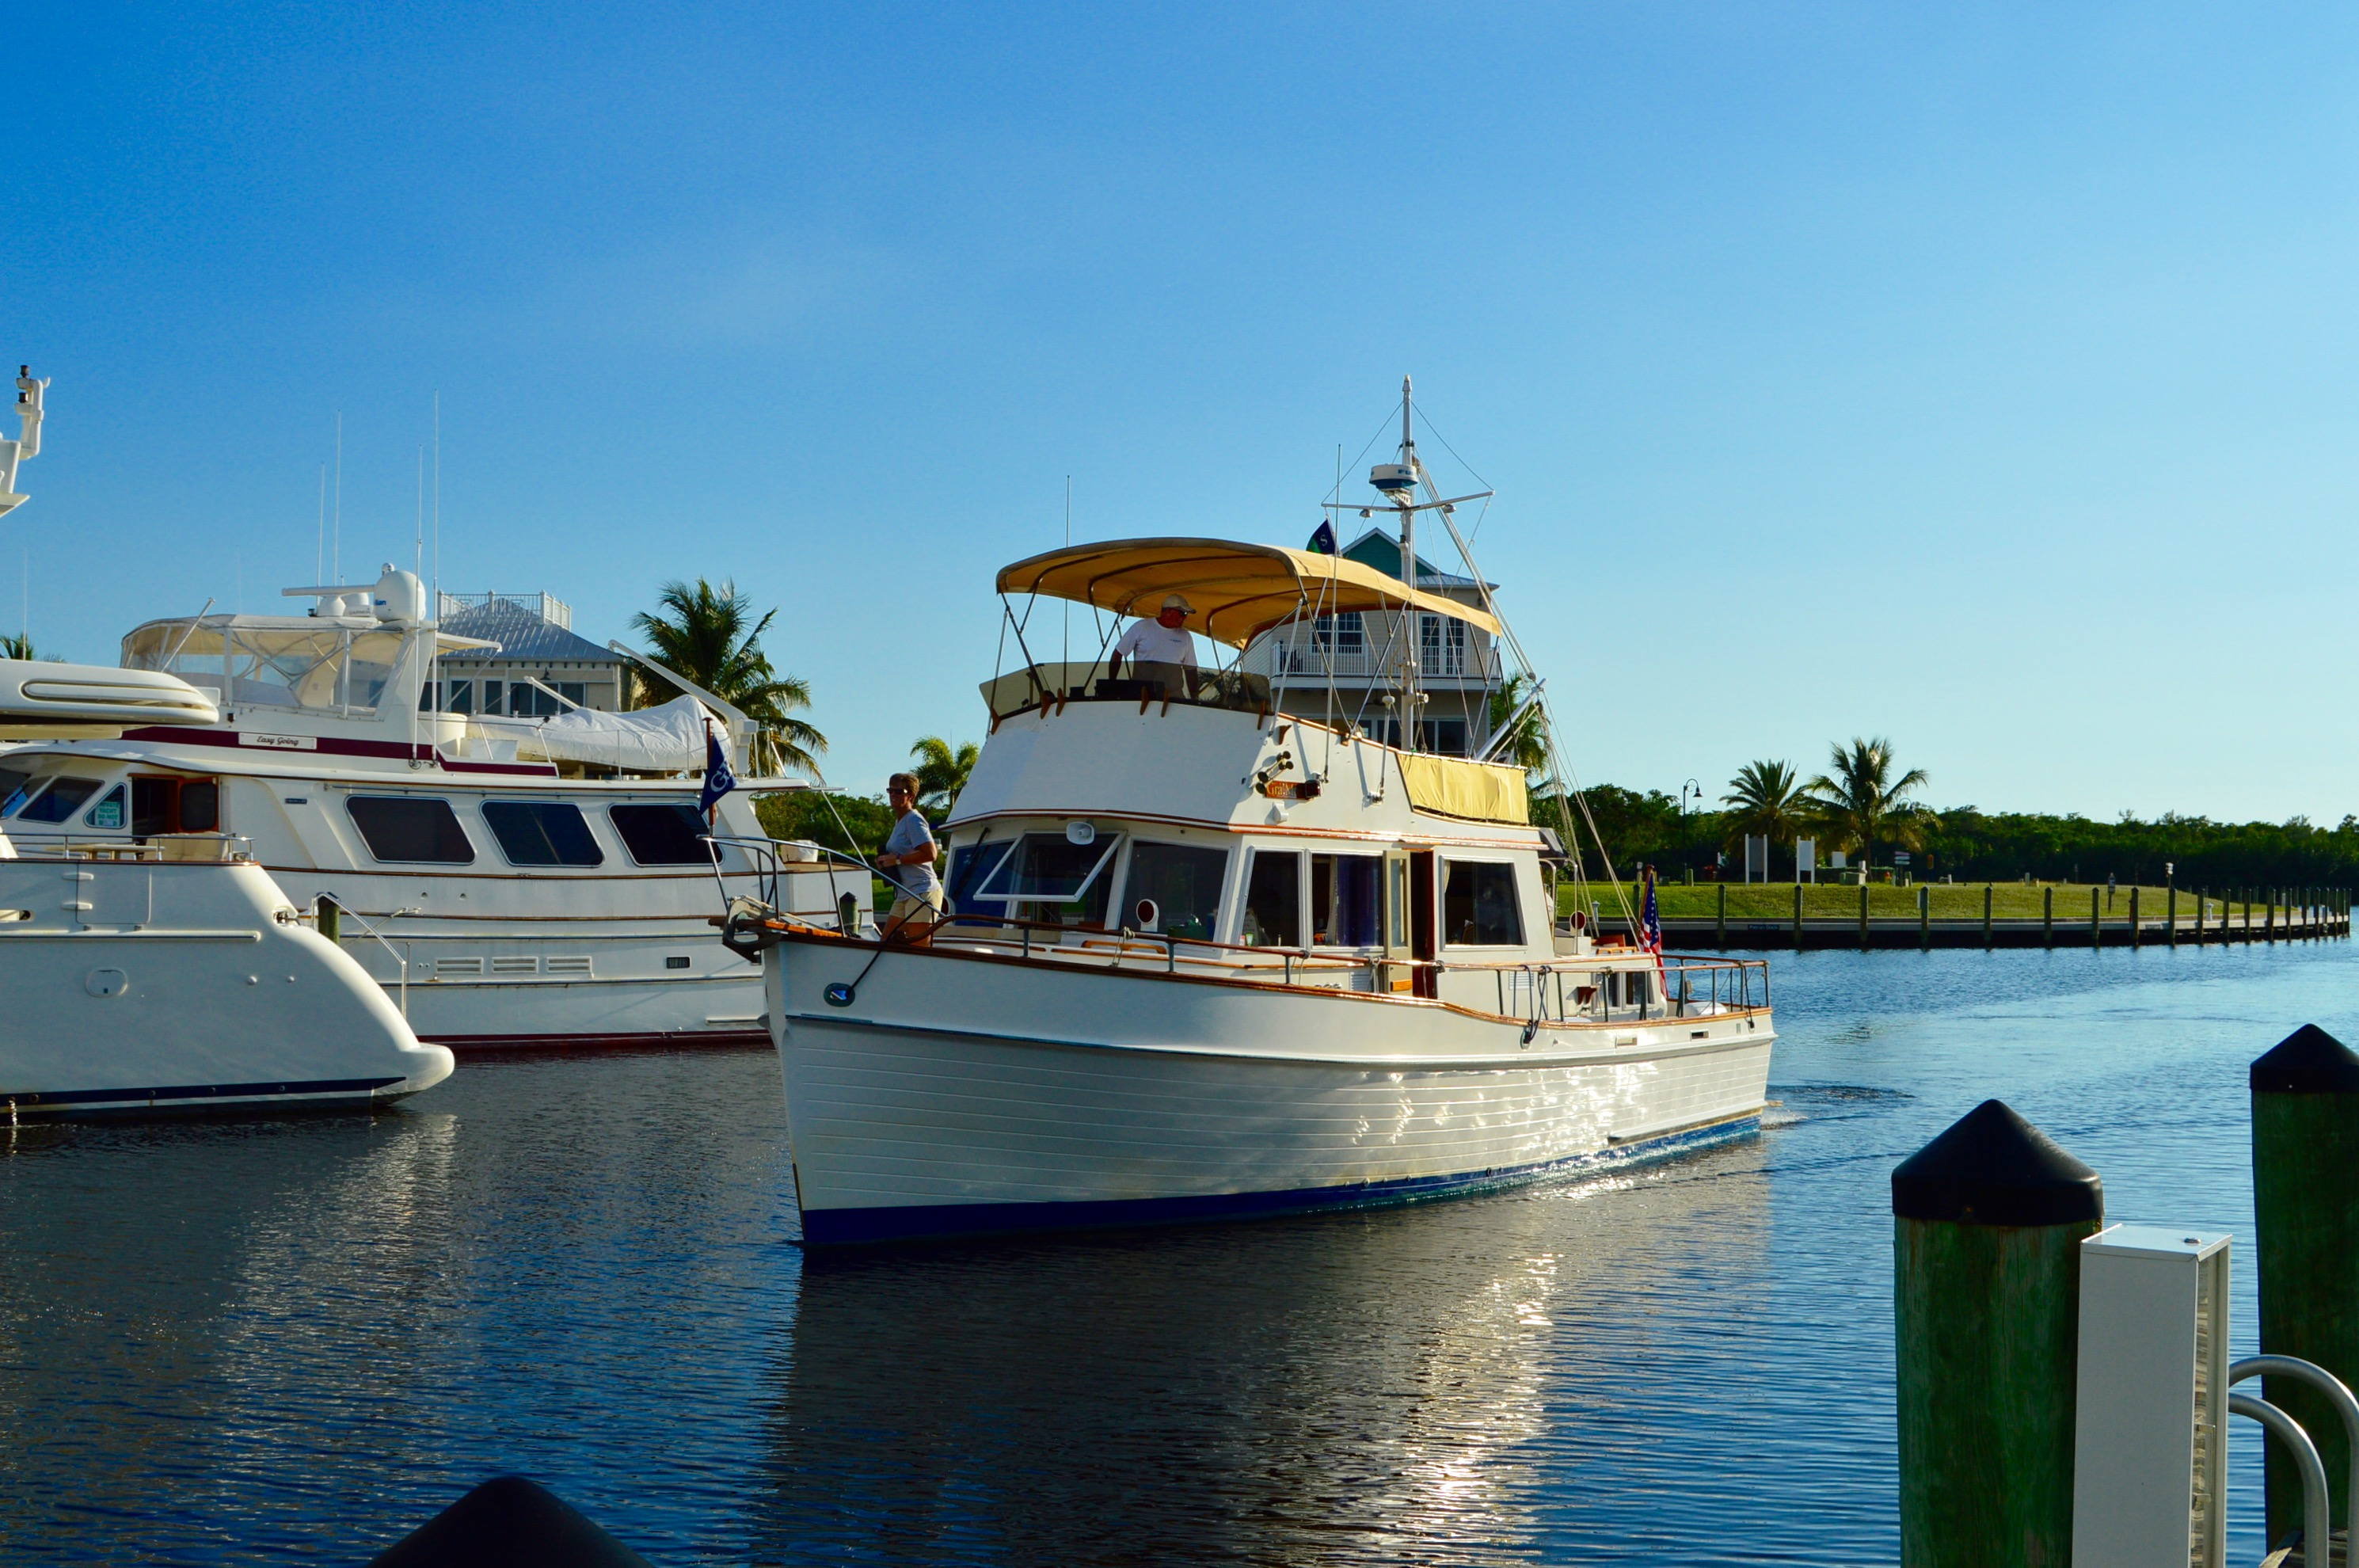 cape coral yacht club, tarpon point, cape harbour, caloosahatchee river, gulf of mexico